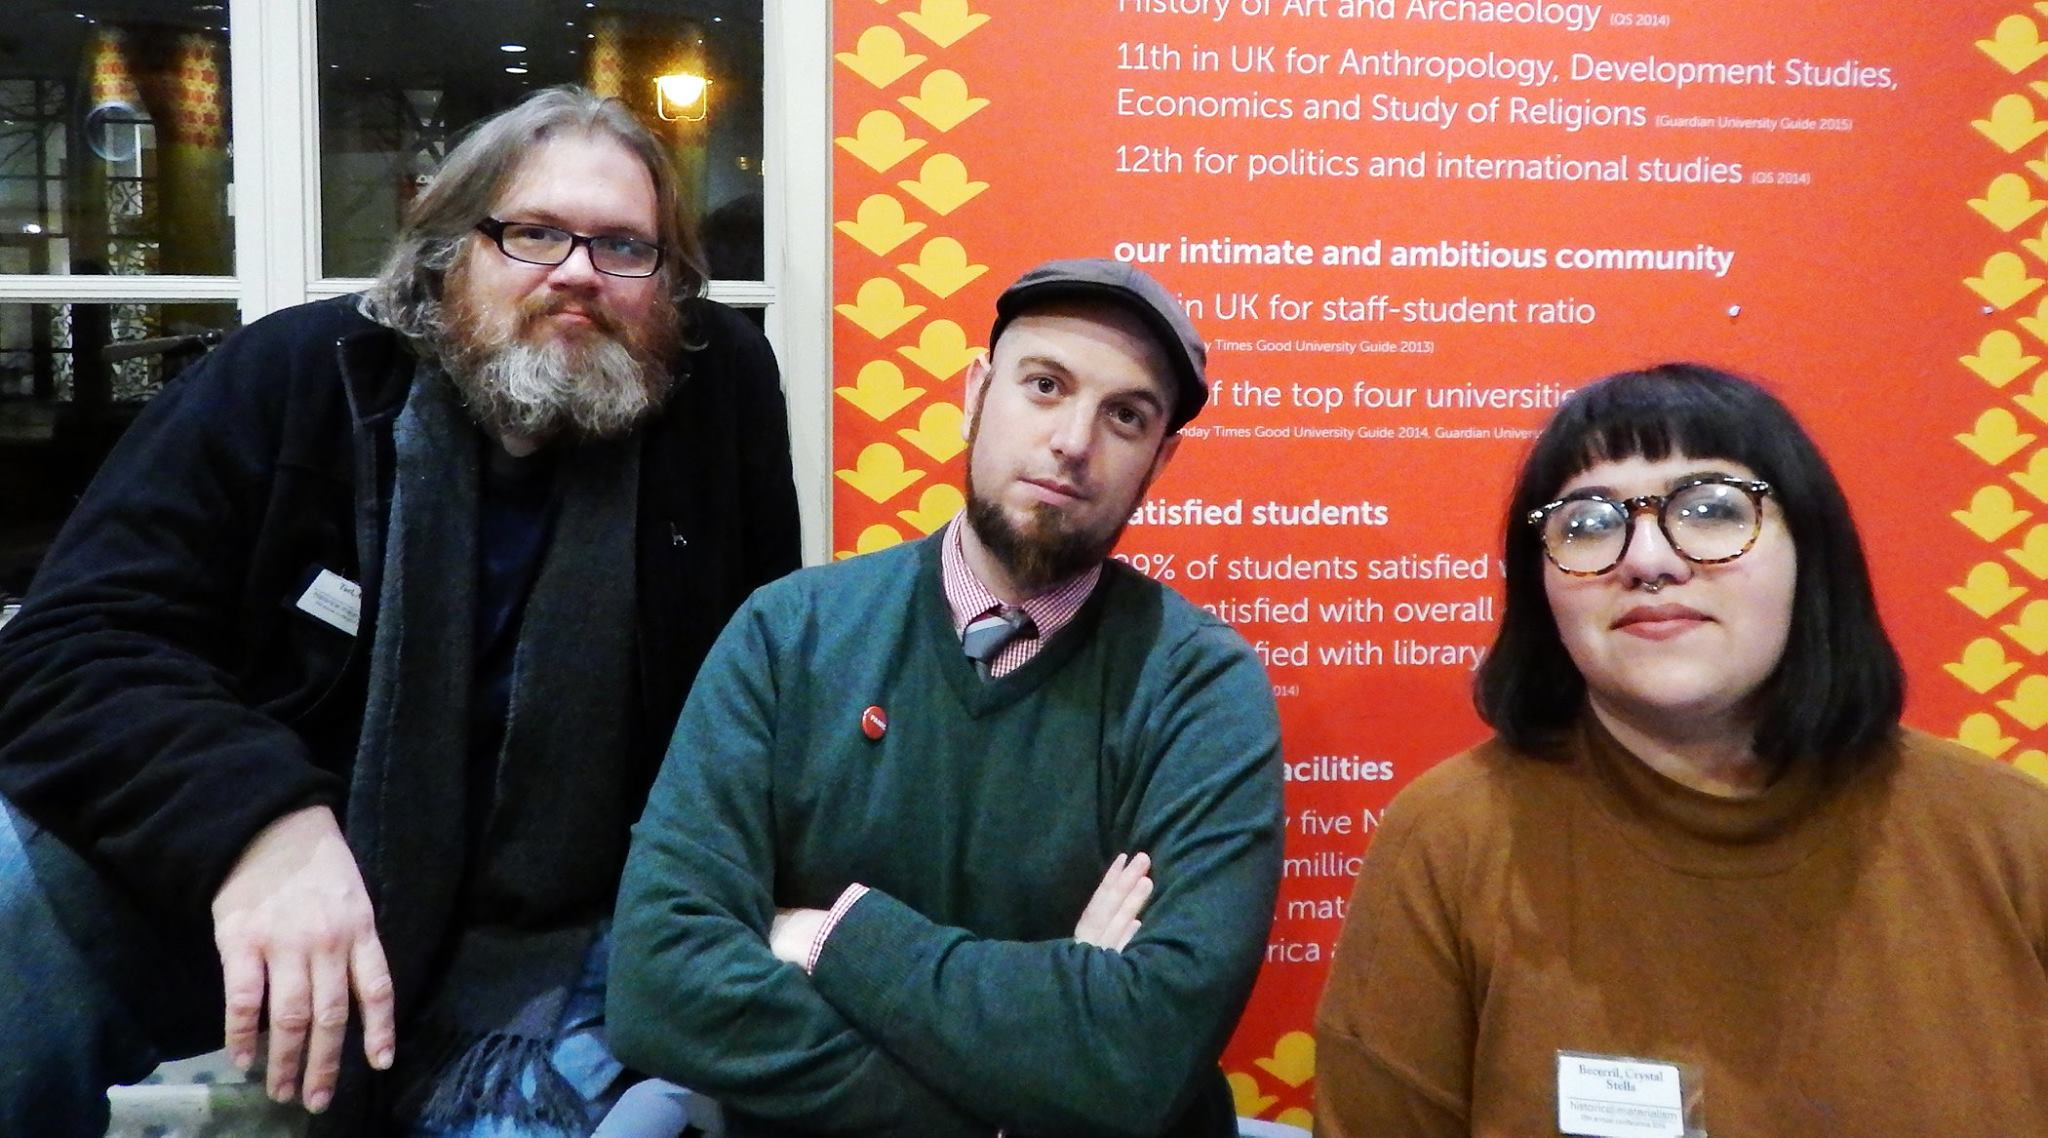 Adam Turl, Alexander Billet and Crystal Stella Becerril at Historical Materialism London (2016).